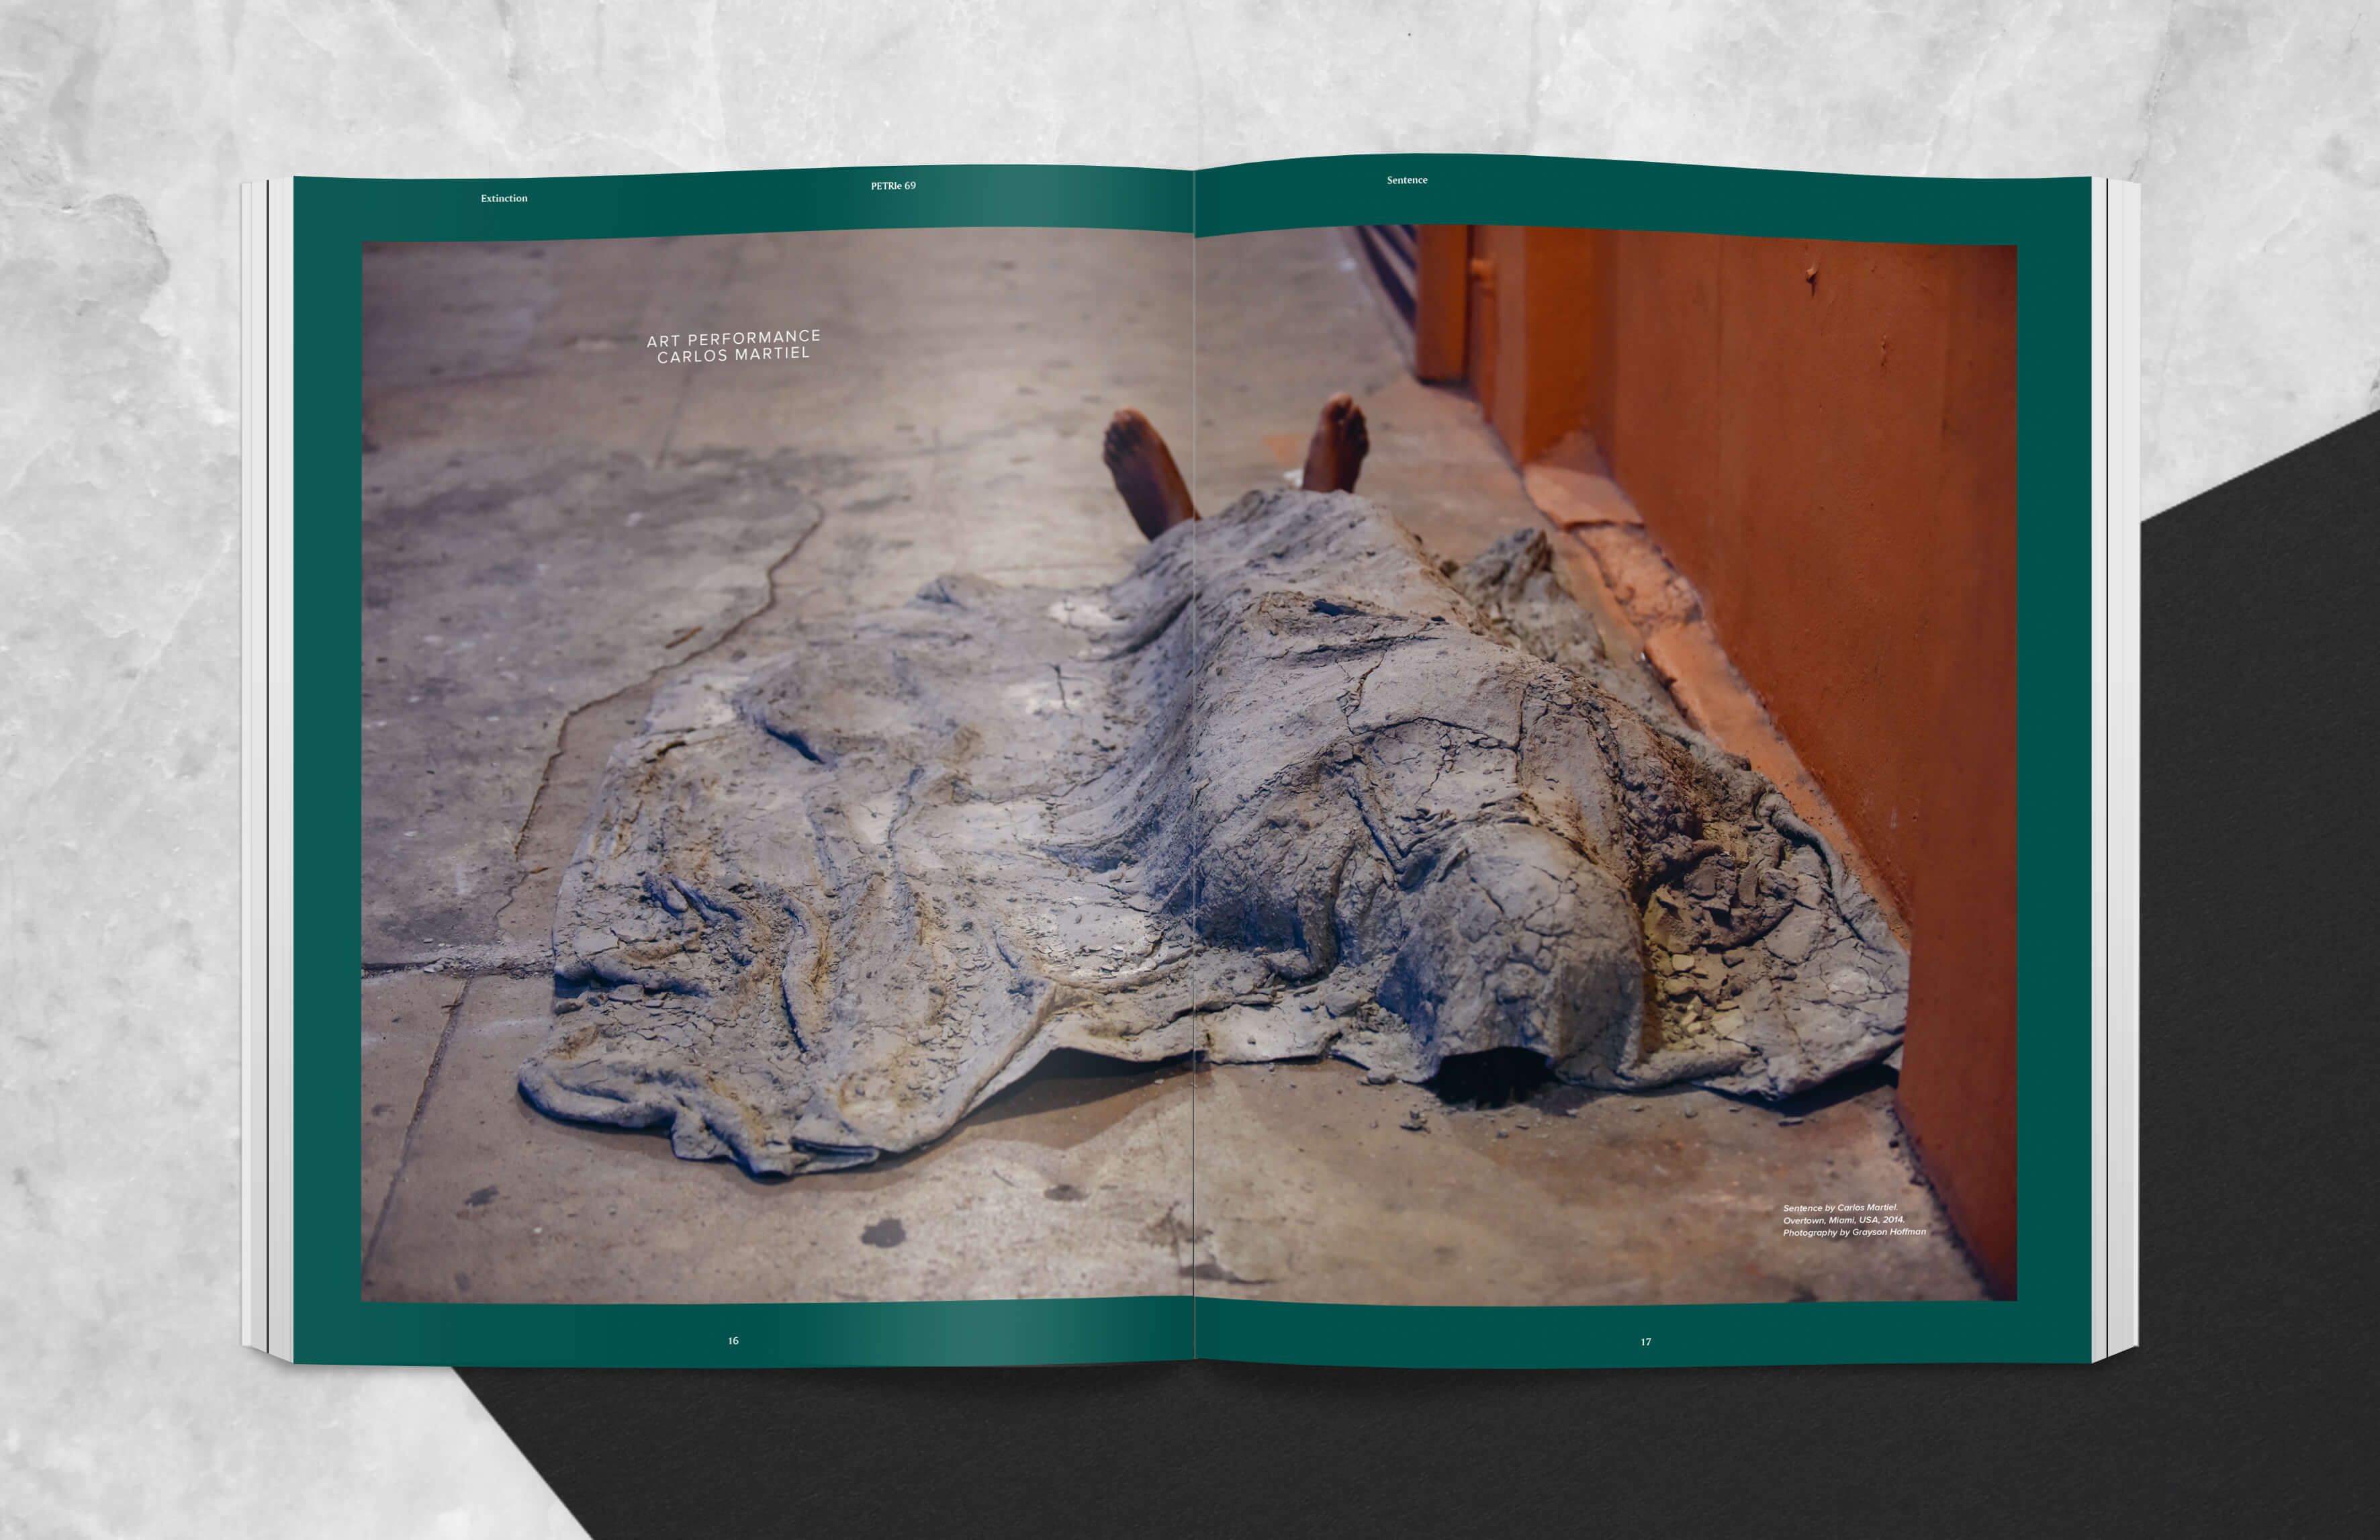 Magazine spread showing art performance, body under concrete blanket